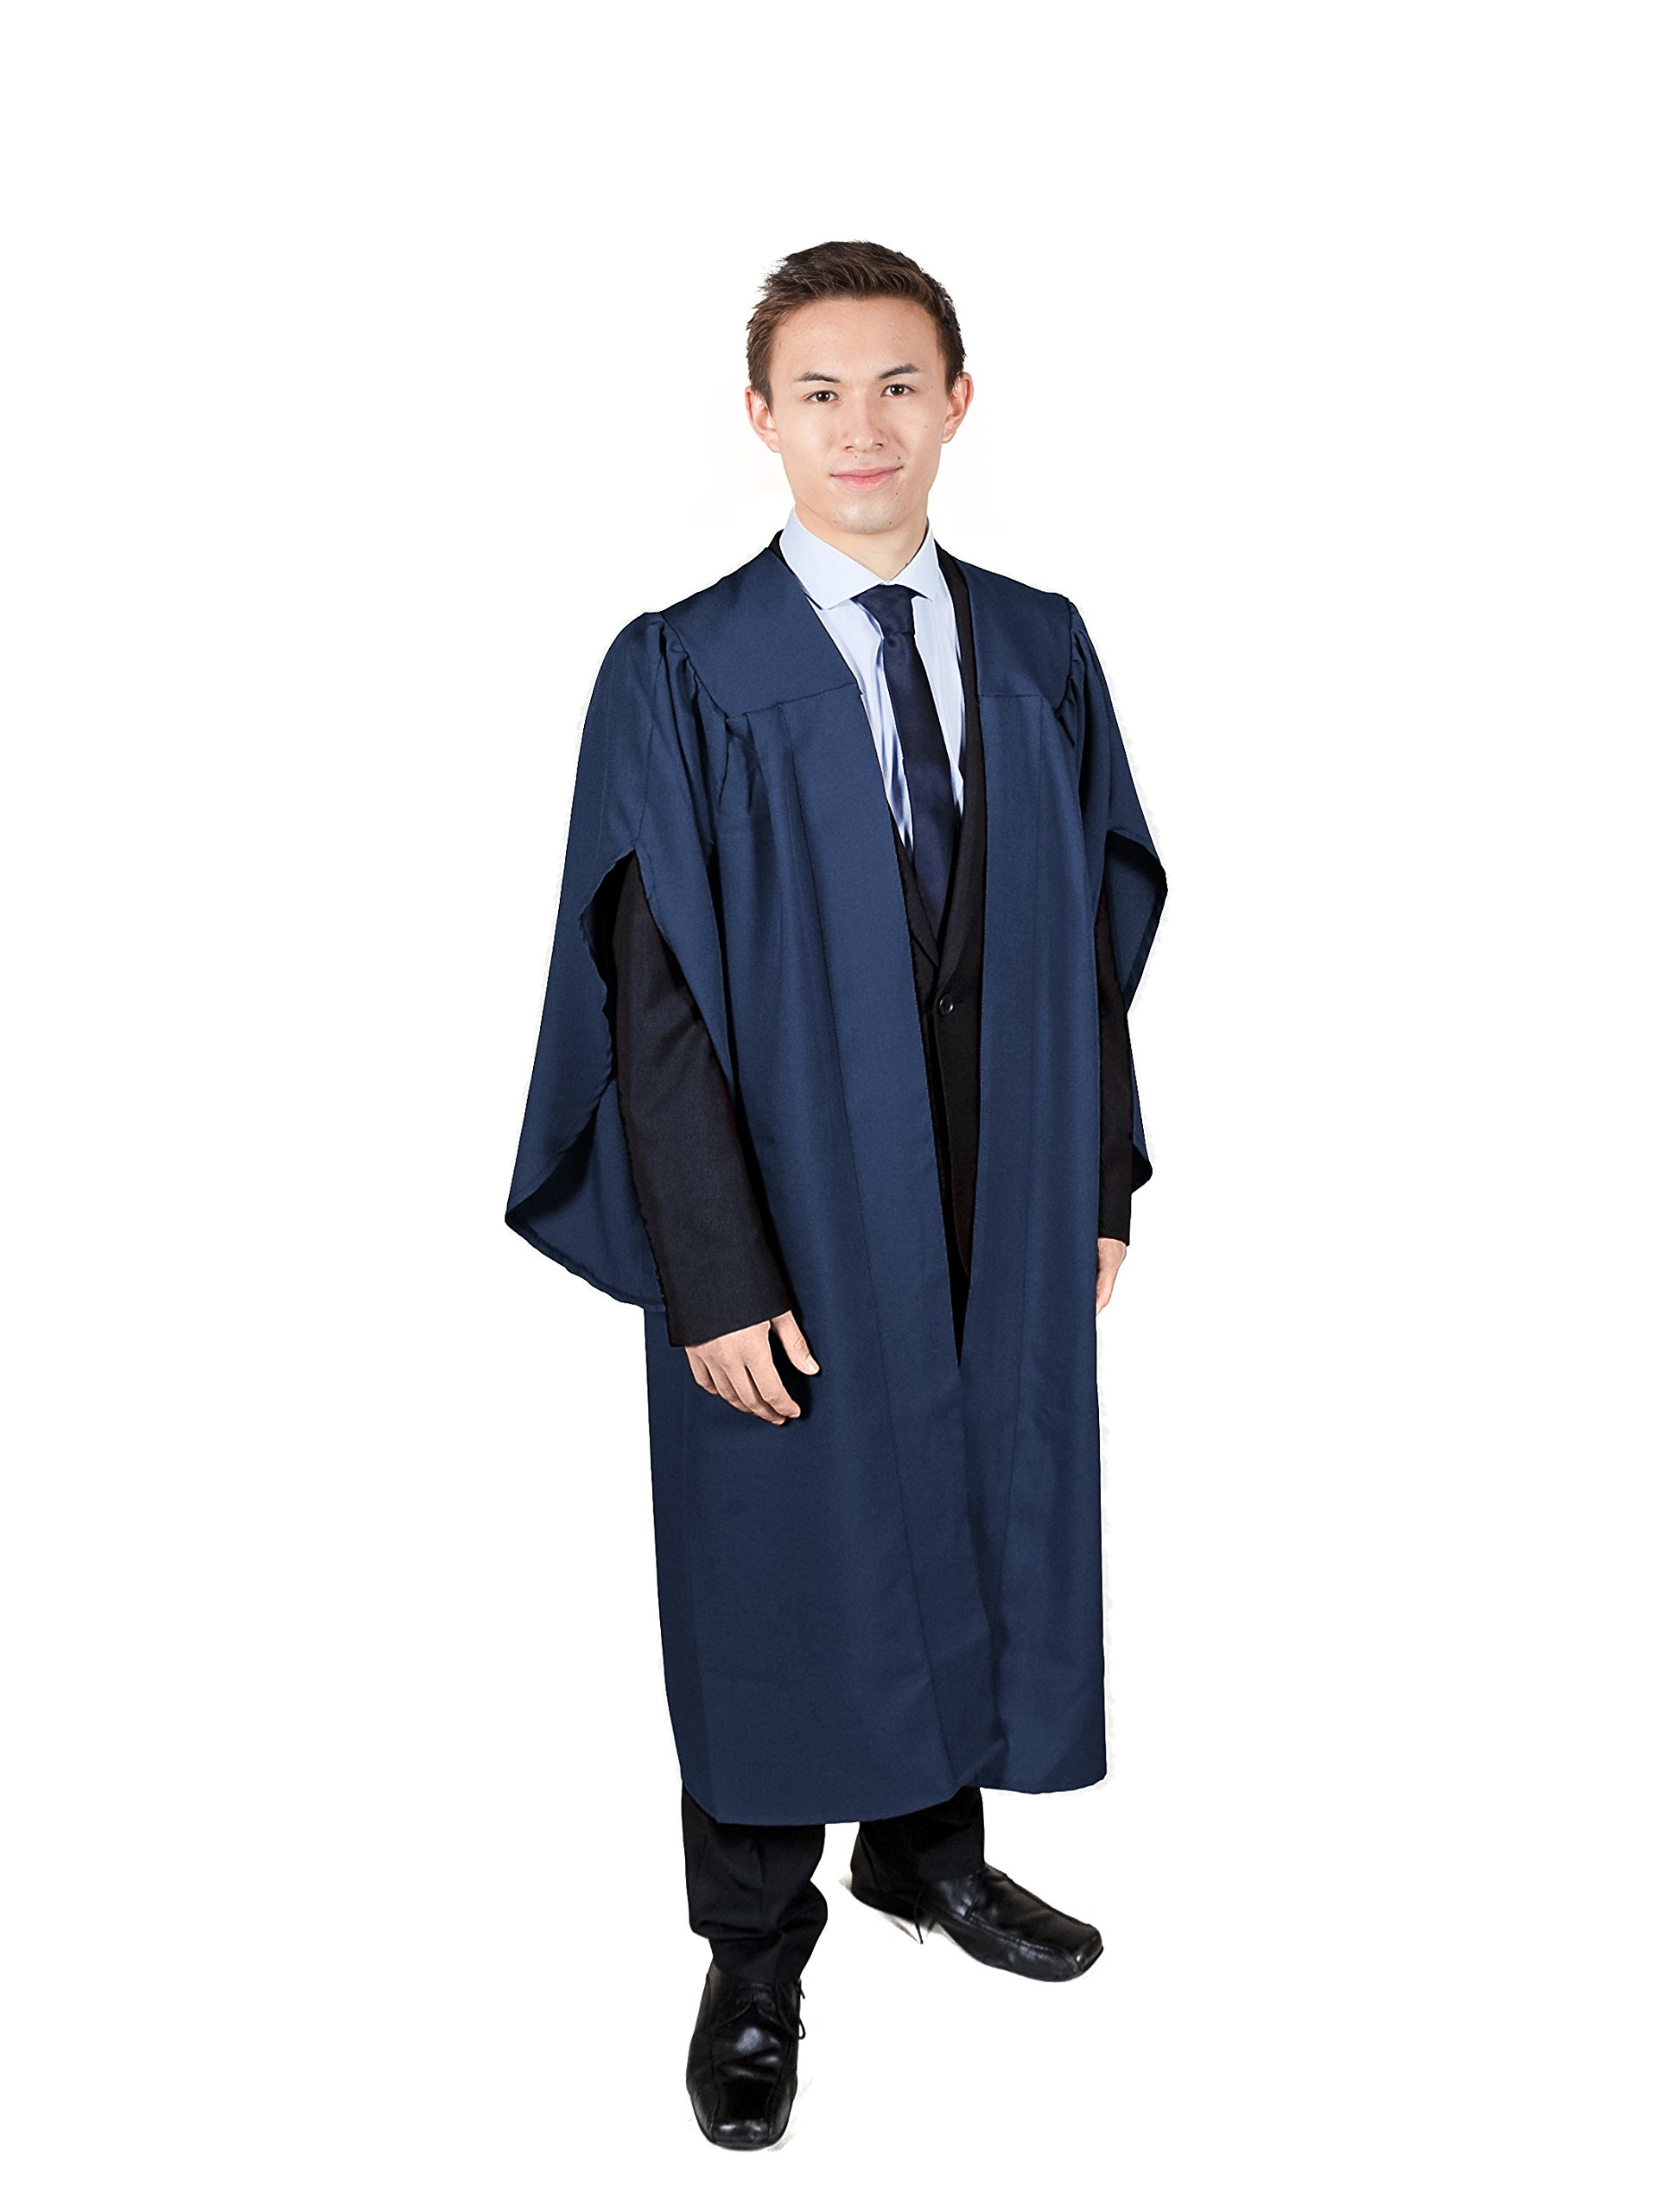 Graduation Attire Navy Open Front Choir Robe (Height 5'0-5'2)